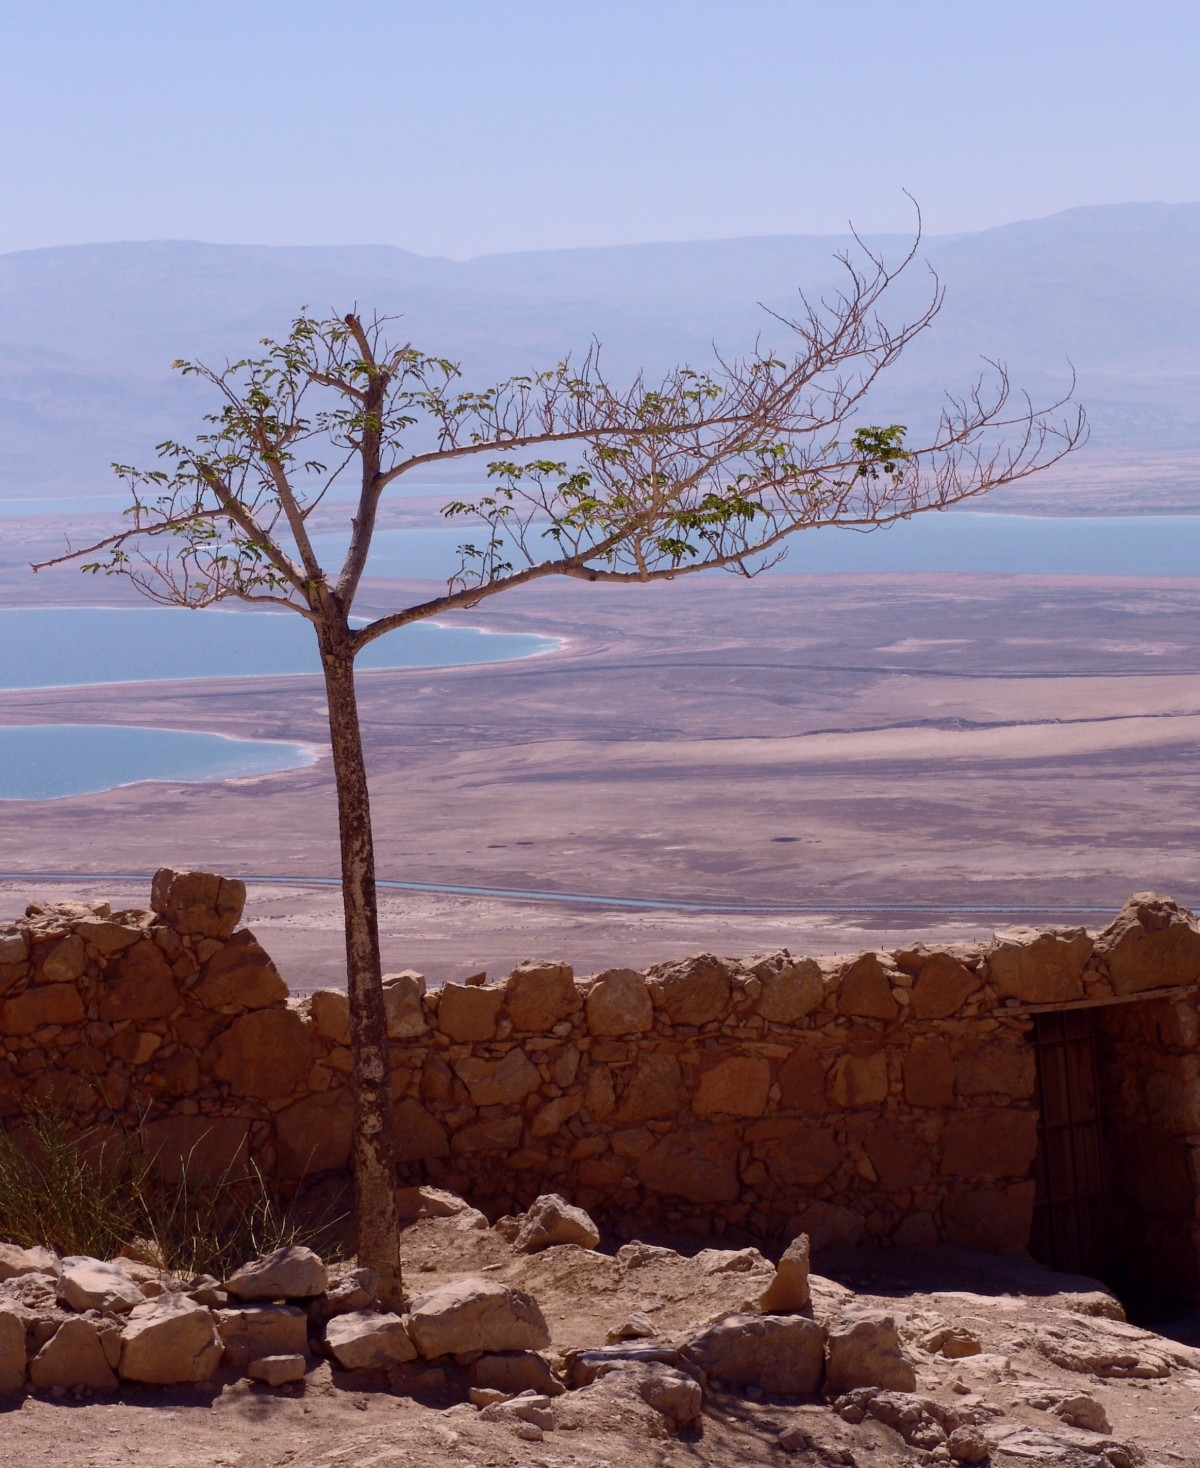 dead_sea_israel_landscape_salt_travel_east_mineral_coast-1011297.jpg!d.jpeg